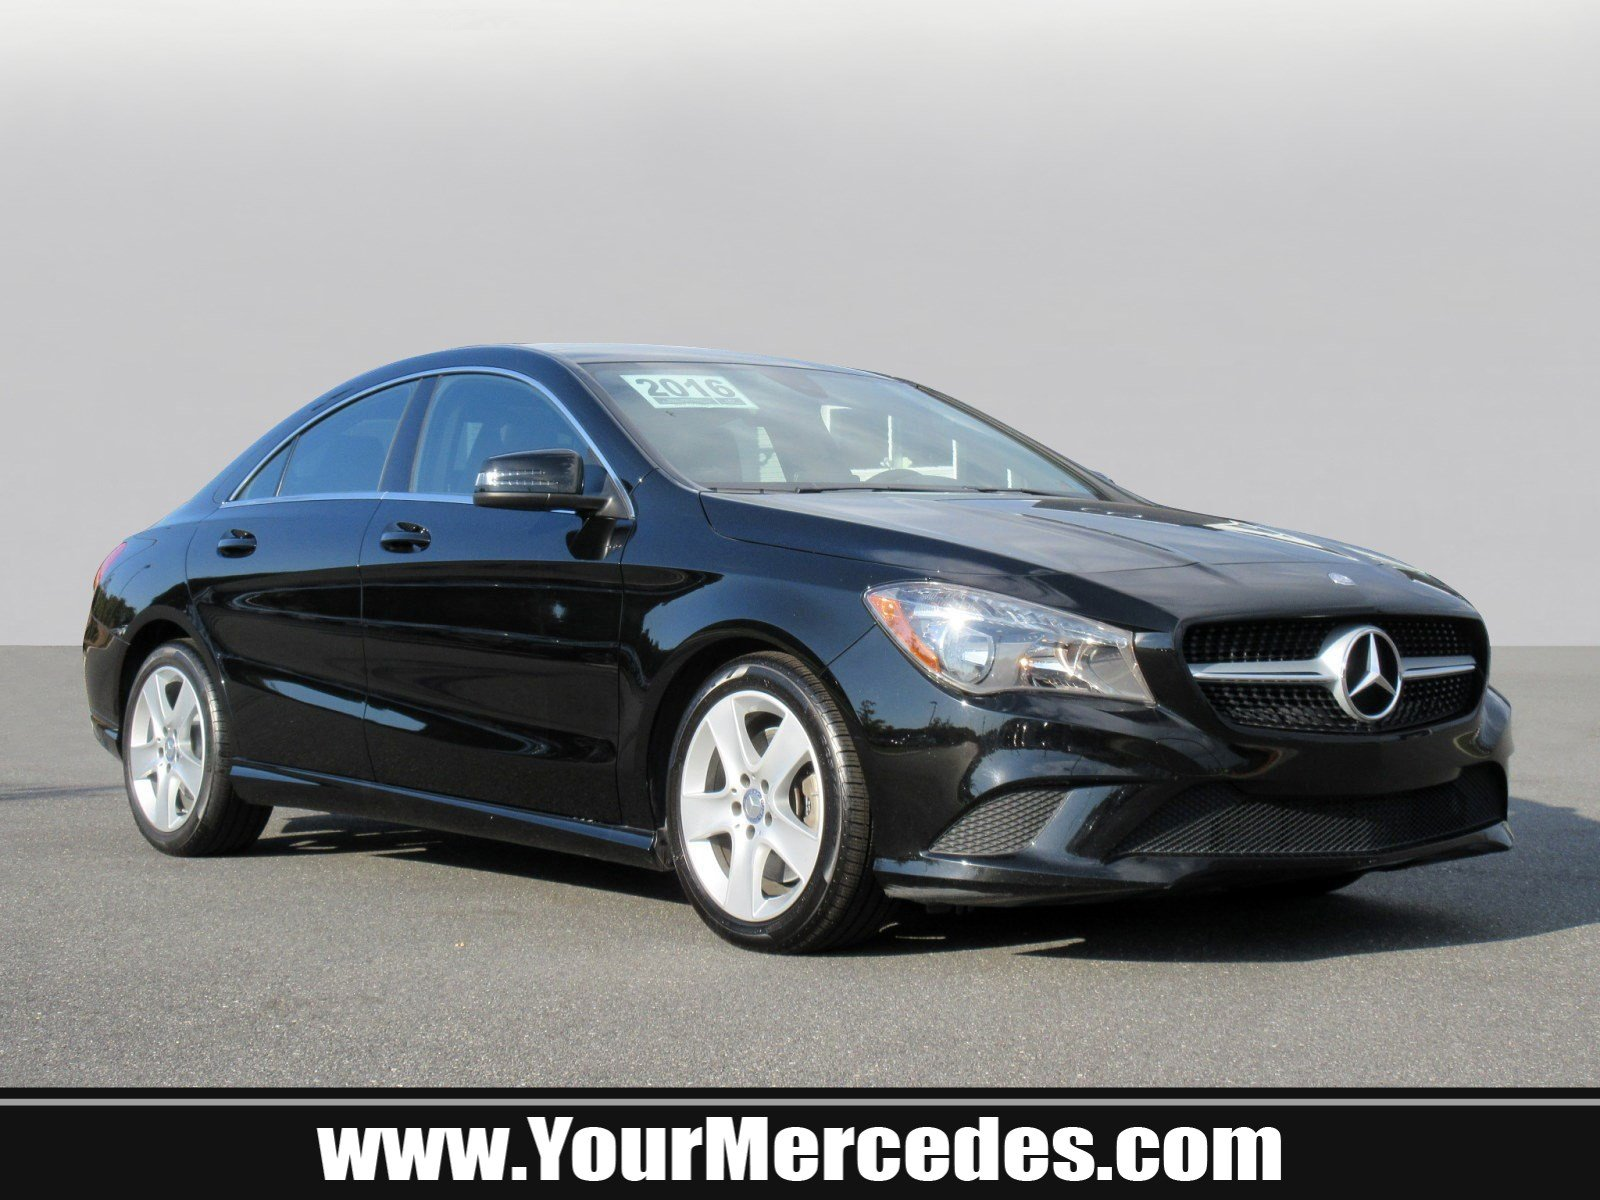 Certified Pre Owned 2016 Mercedes Benz CLA CLA 250 Coupe in Egg